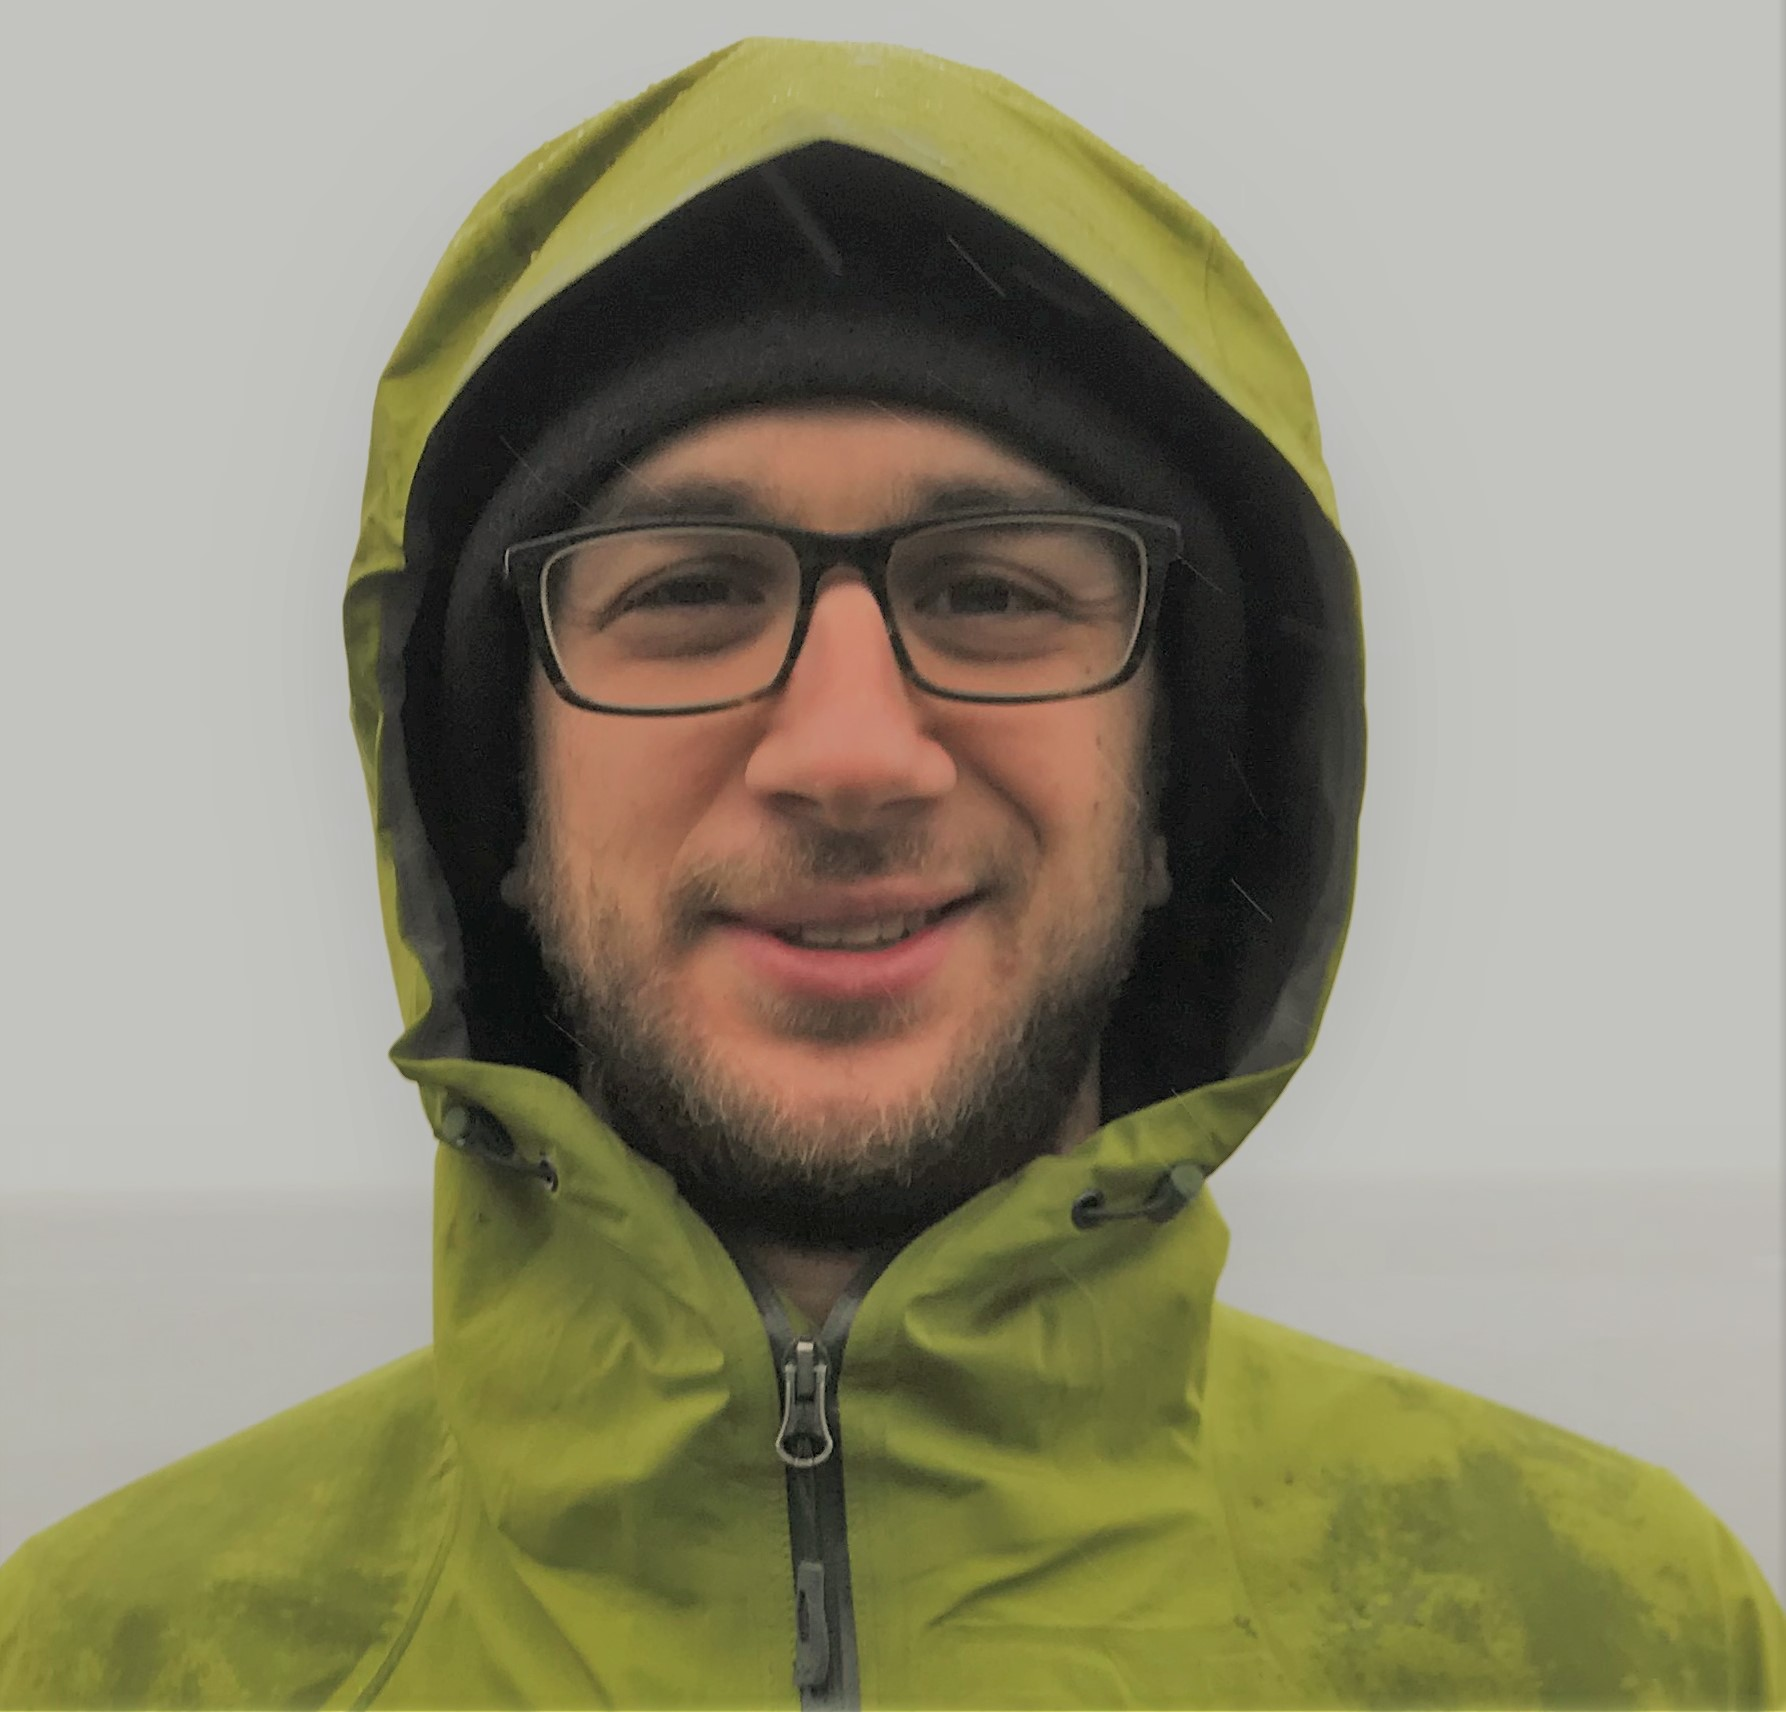 Mark first worked in the unit as an undergraduate, then completed a MSc in the unit, and has returned to work toward a PhD. He is developing an integrated population modeling framework for listed salmonids in the Columbia River Basin